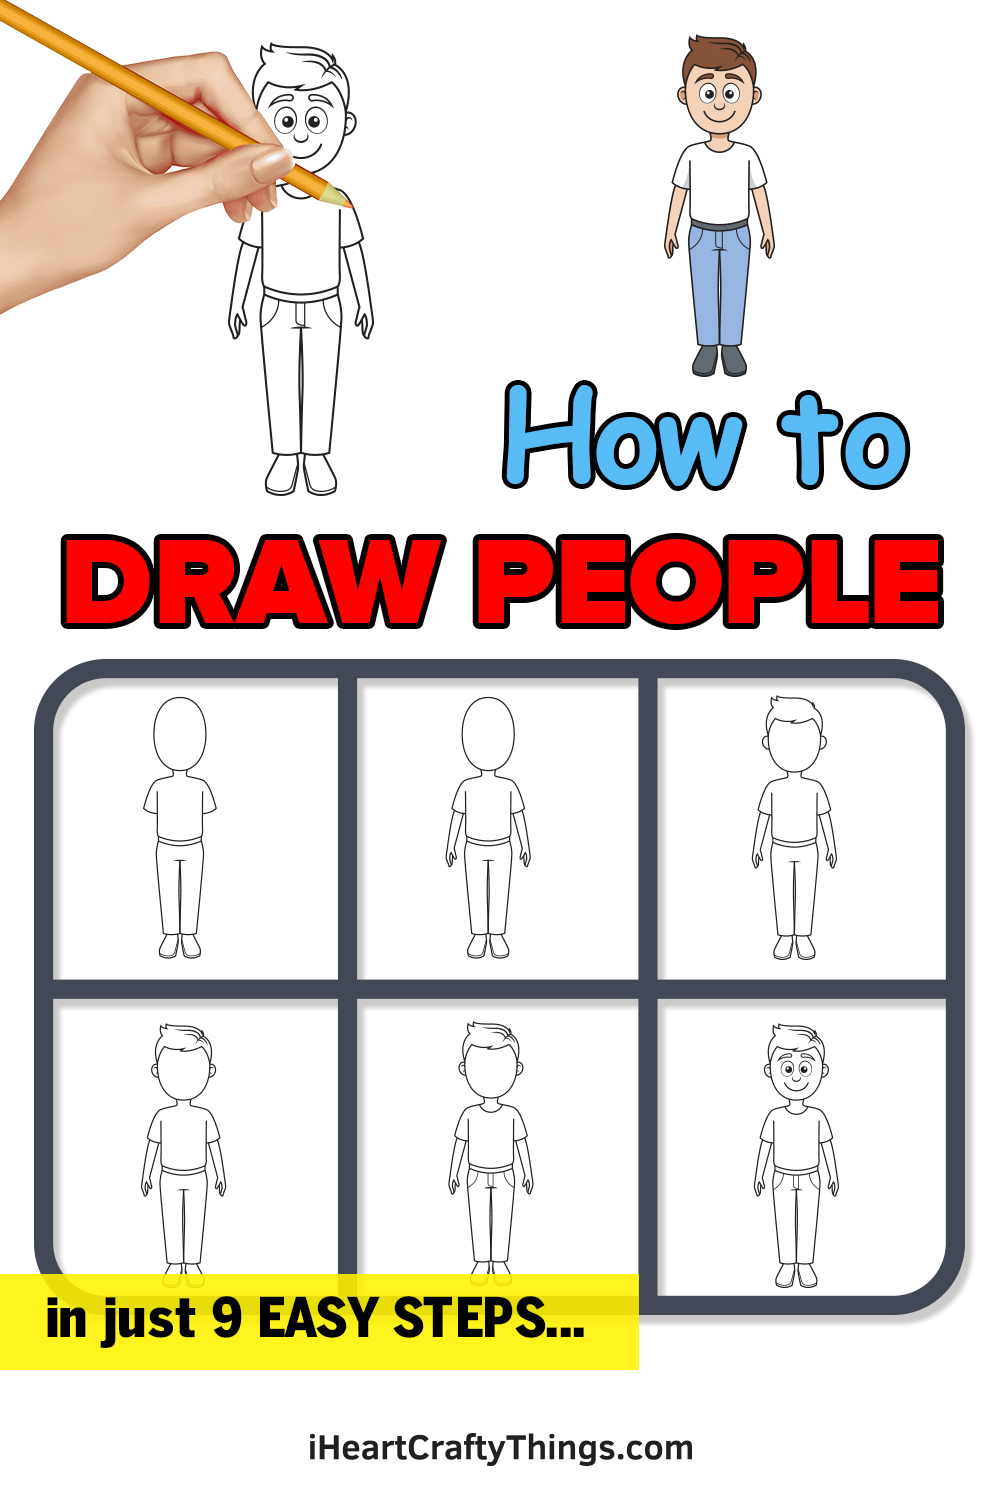 how to draw people in 9 easy steps